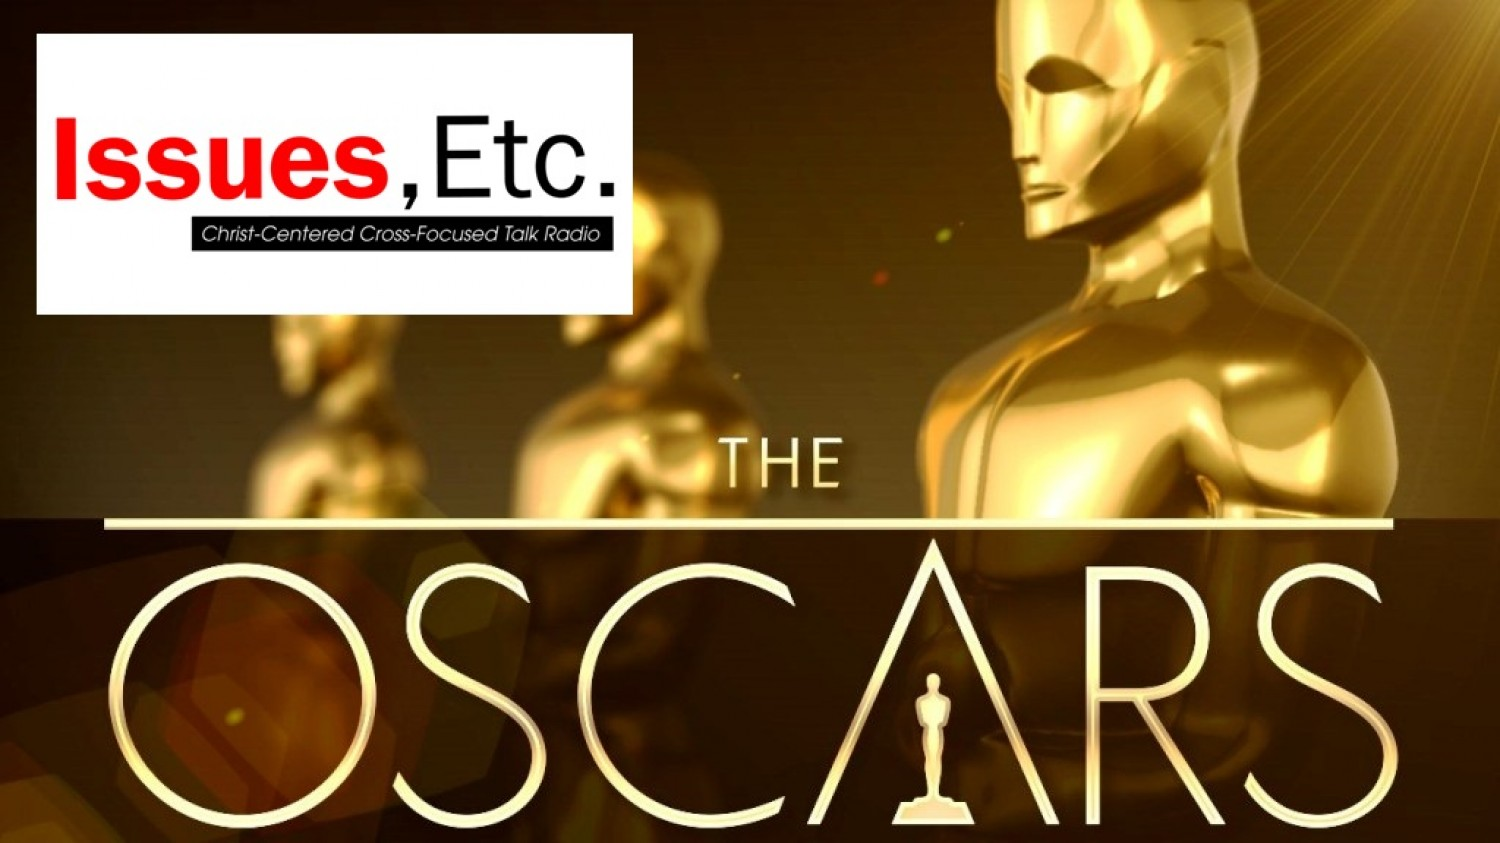 Oscars - 88th Academy Awards - winning films reviewed by IssuesEtc